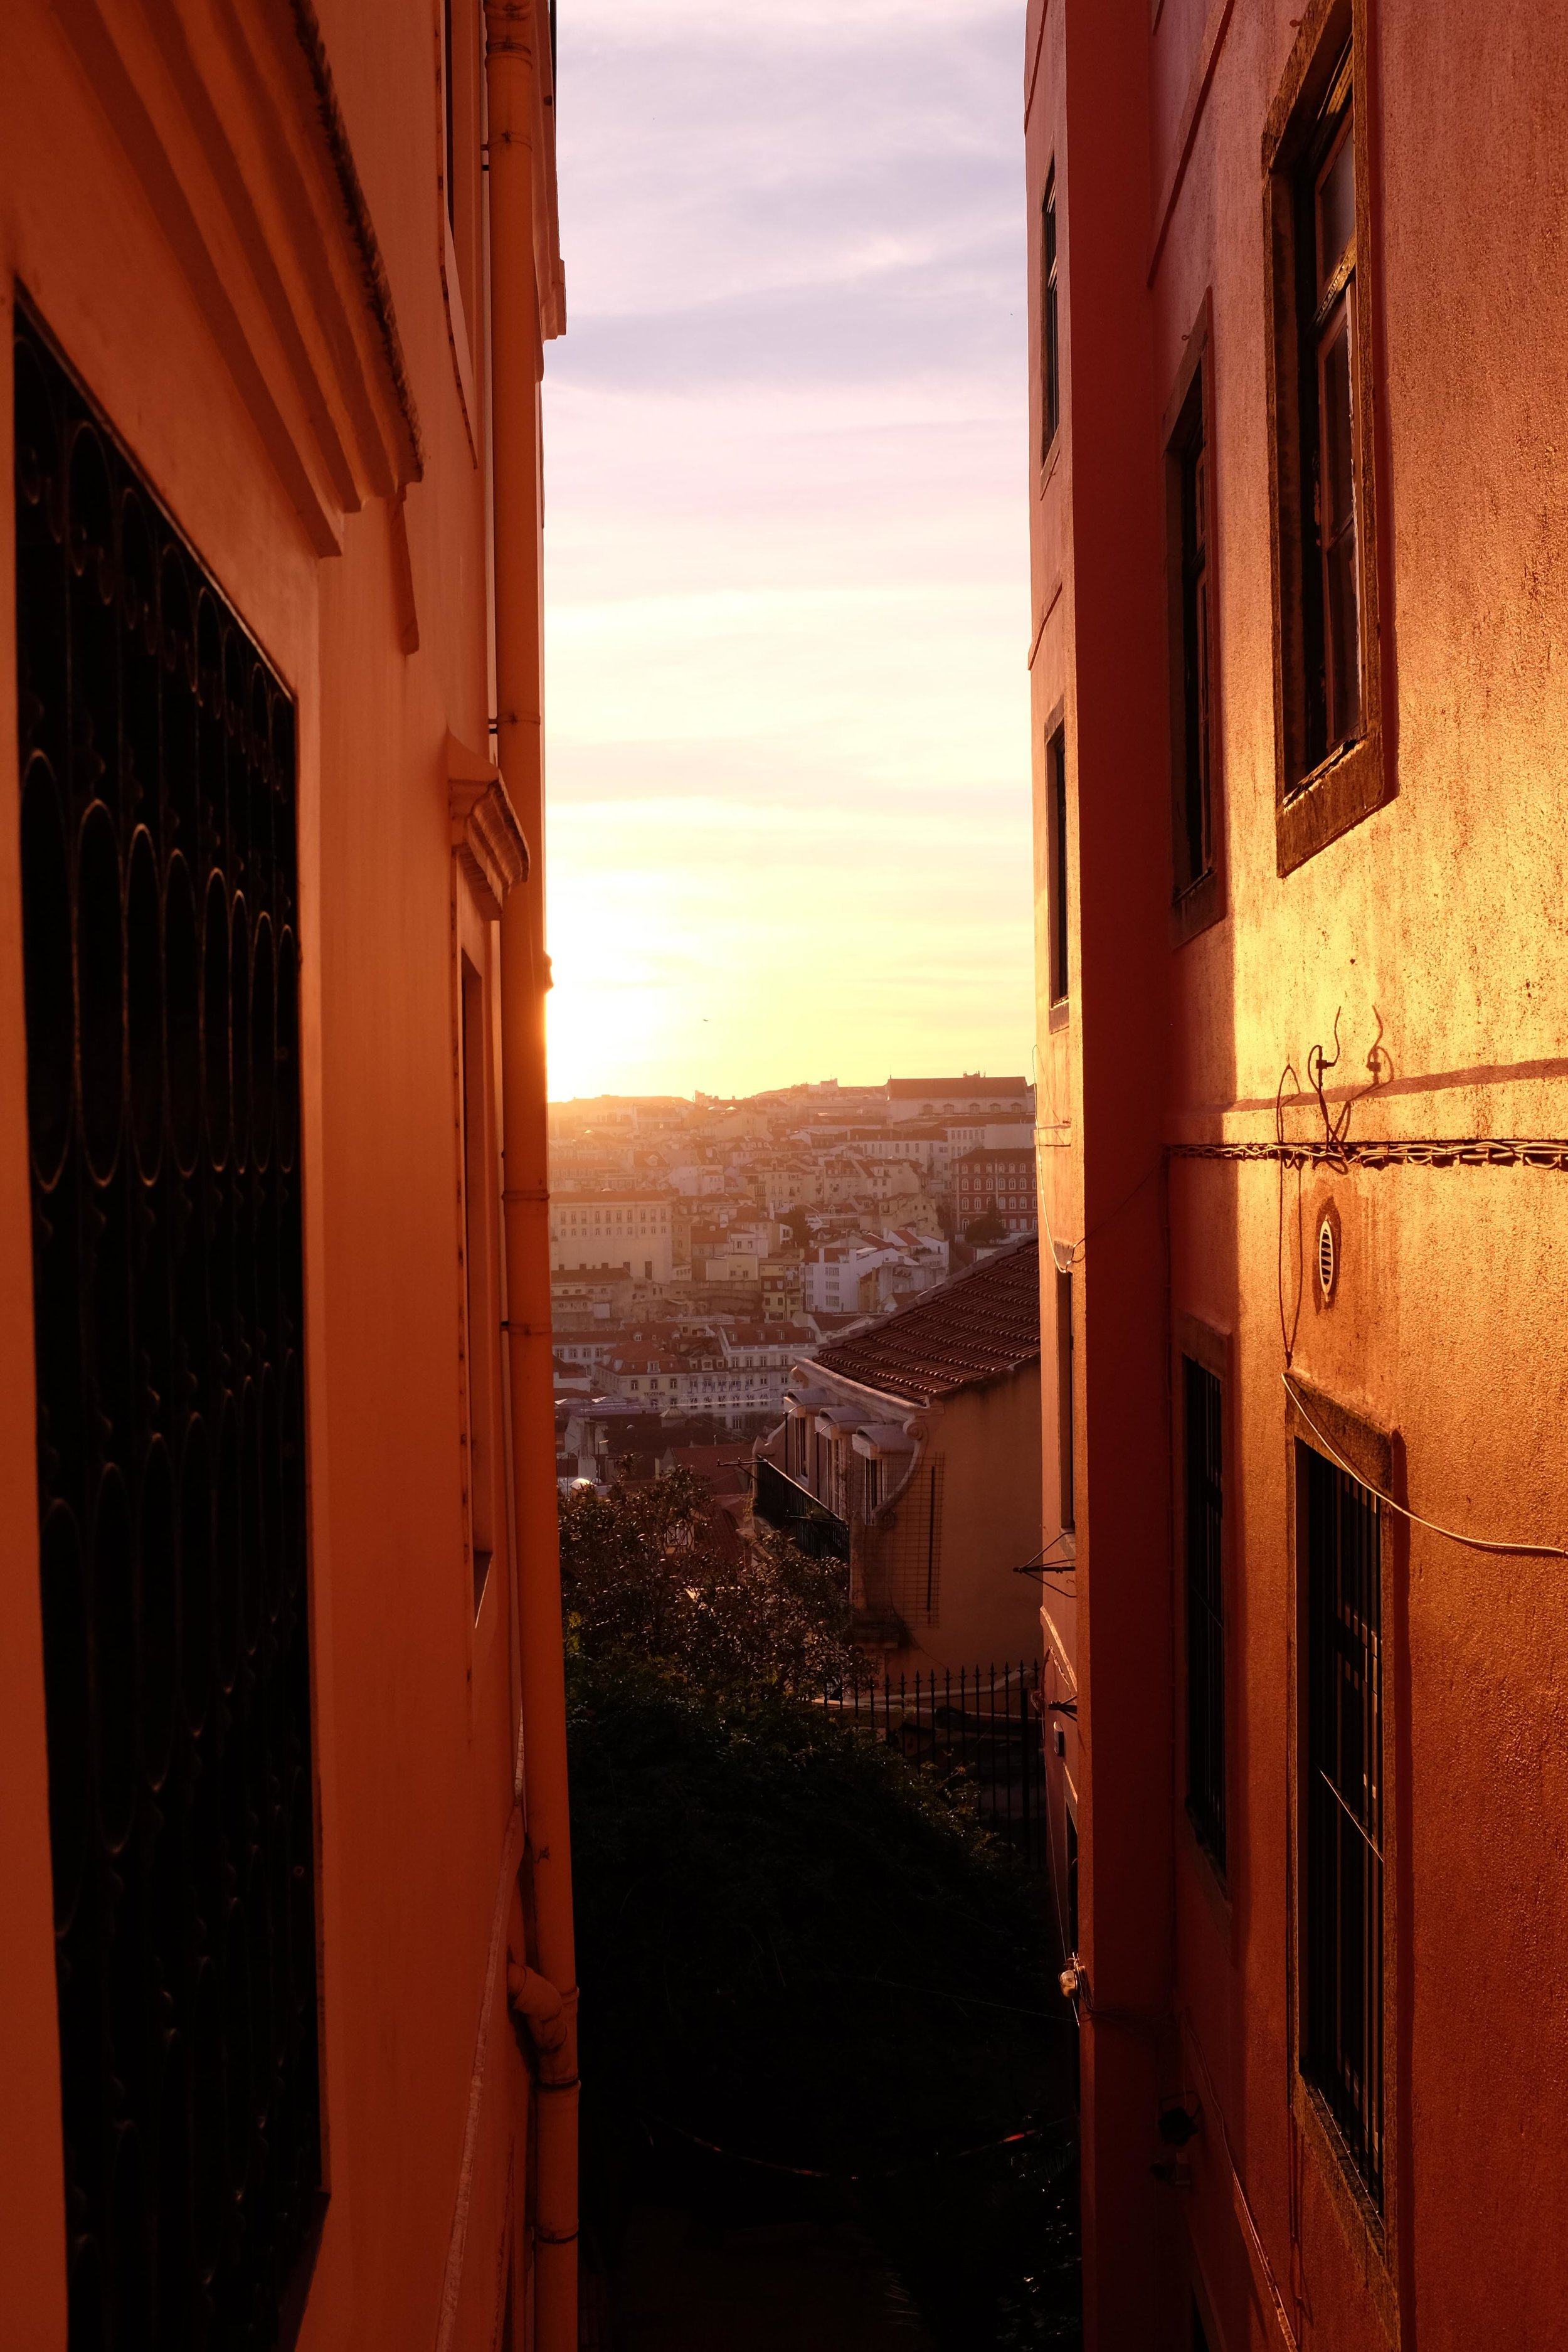 lisbon-portugal-sunset-view-between-buildings